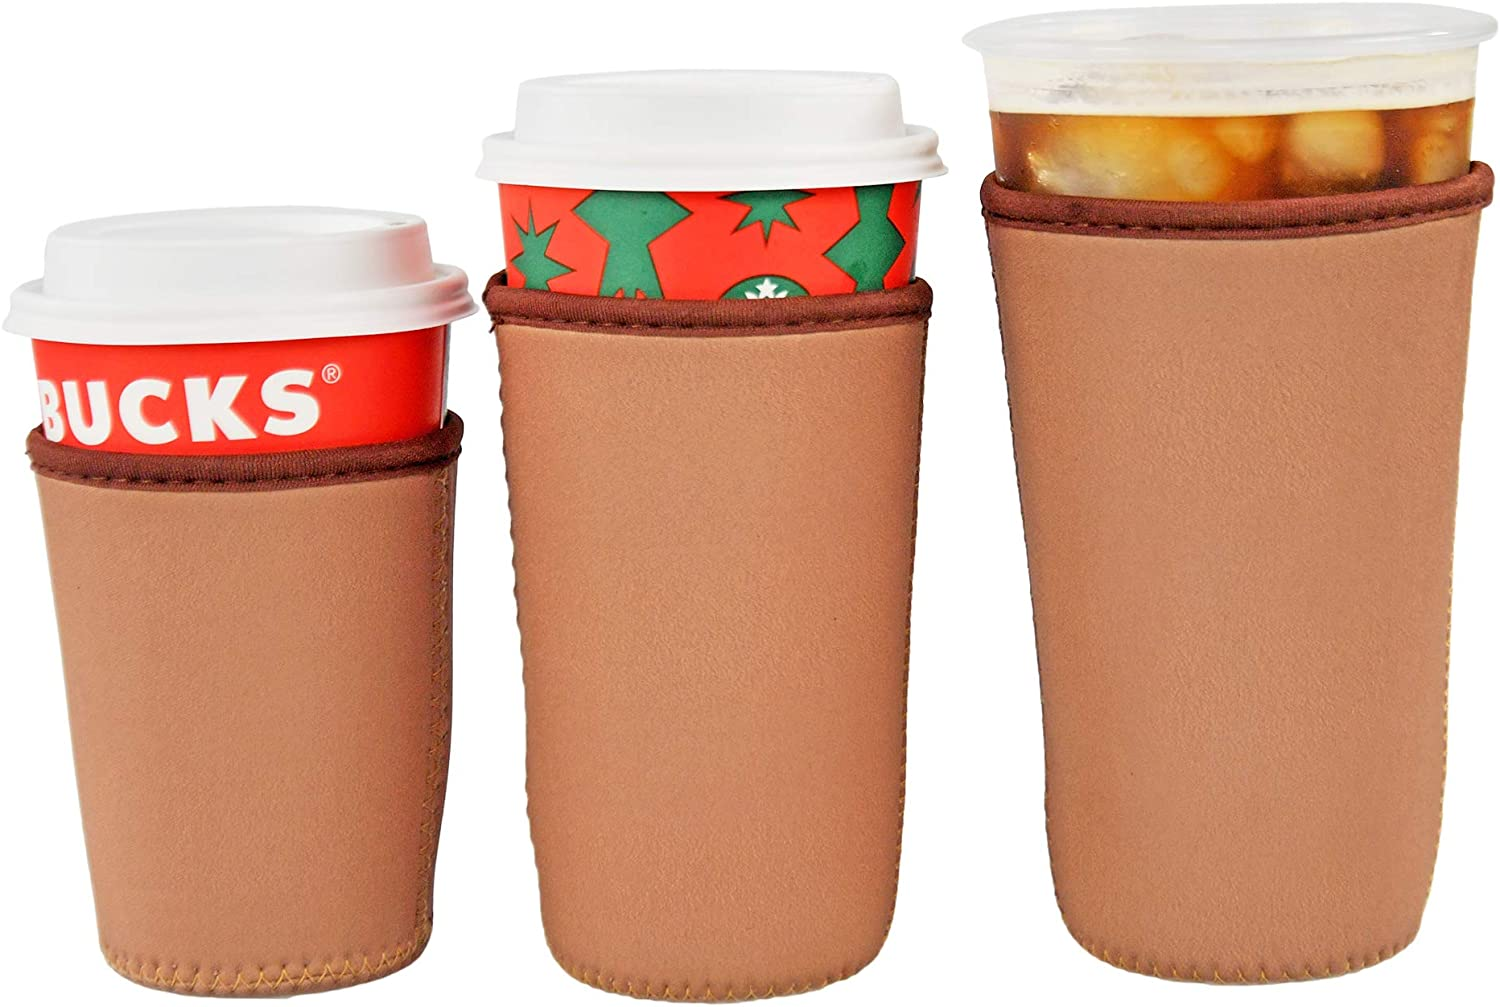 HOME-X Set of 3 Neoprene Cup Sleeves, Iced Beverage Cup Holders, Drink Sleeve Holders, Set of 3, 16oz, 22 oz, 30oz, Beige